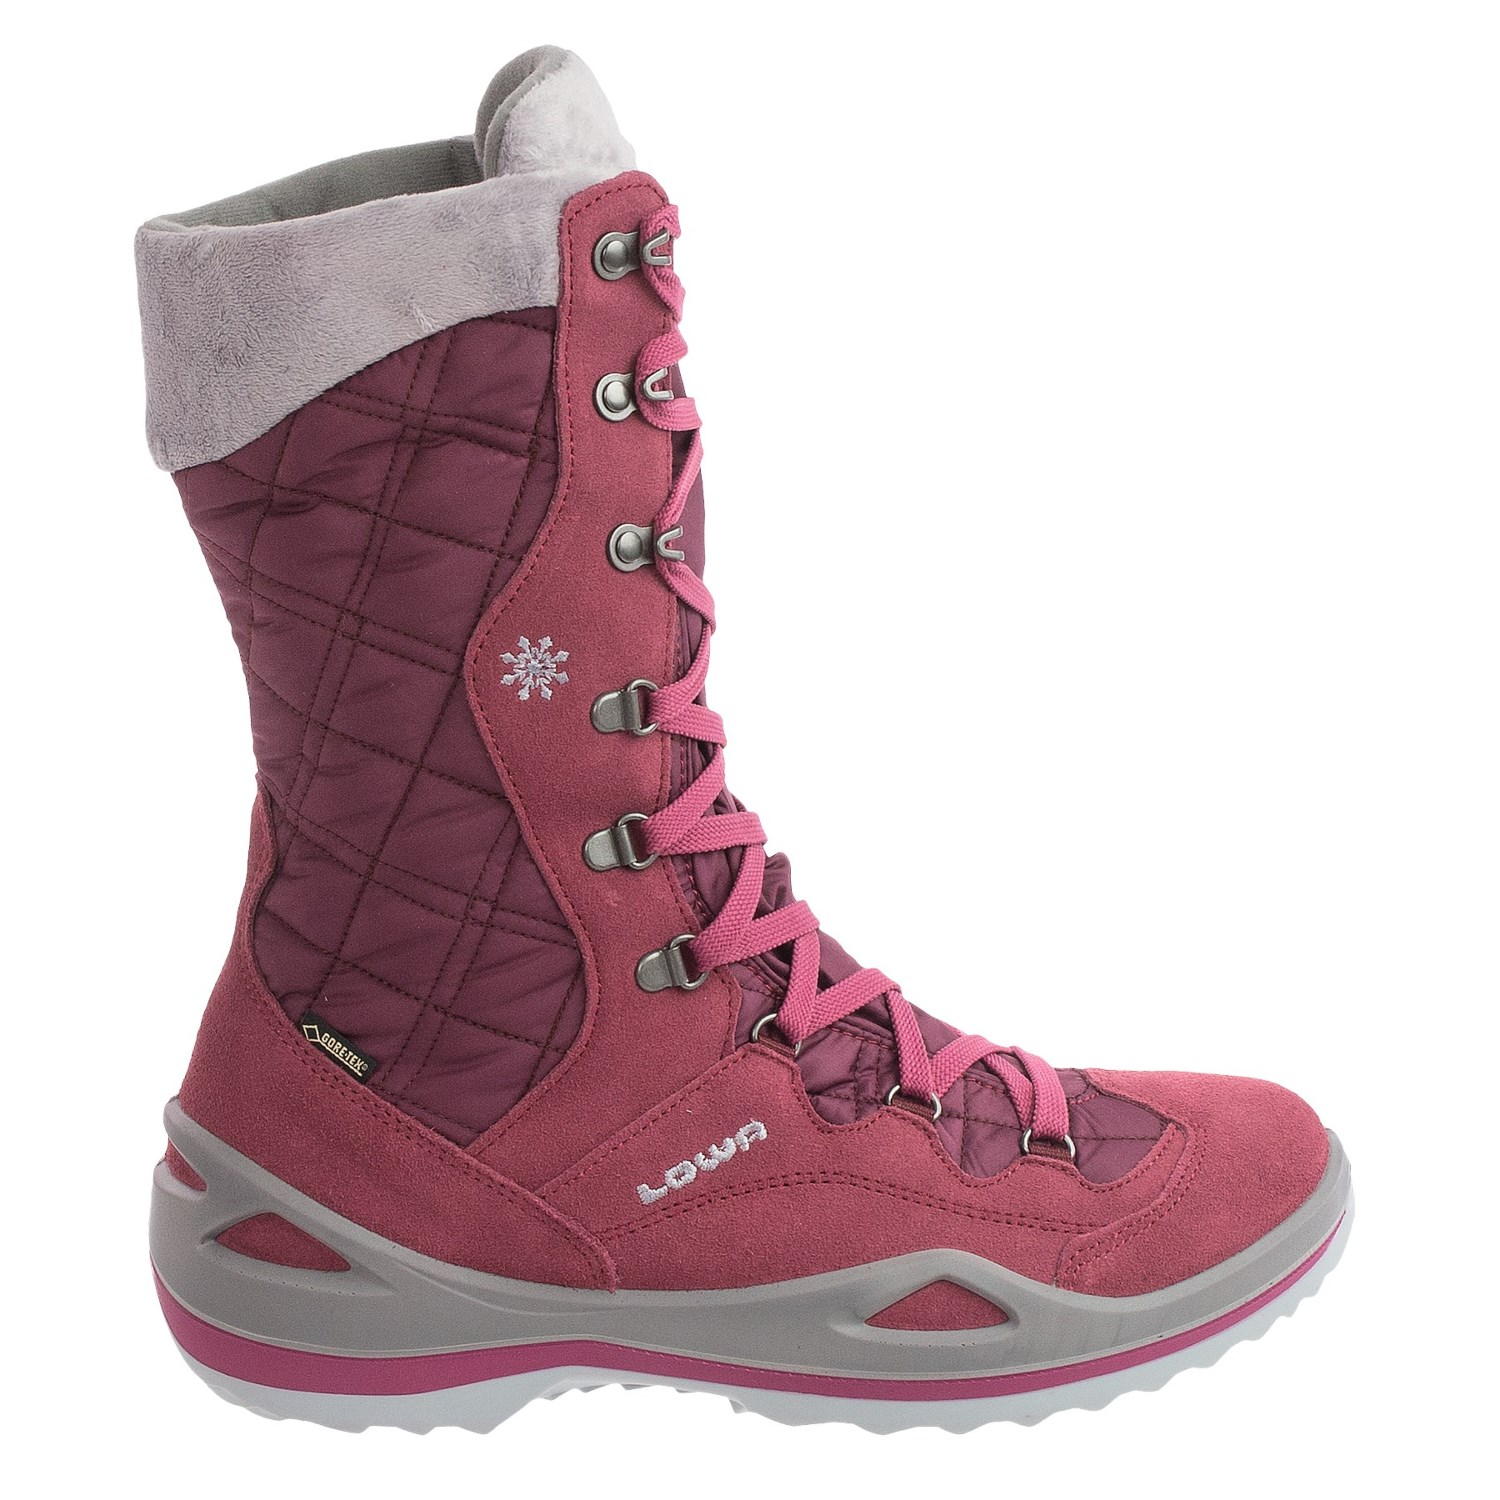 Lowa Atina Gore-Tex® Snow Boots (For Women) - Save 55%